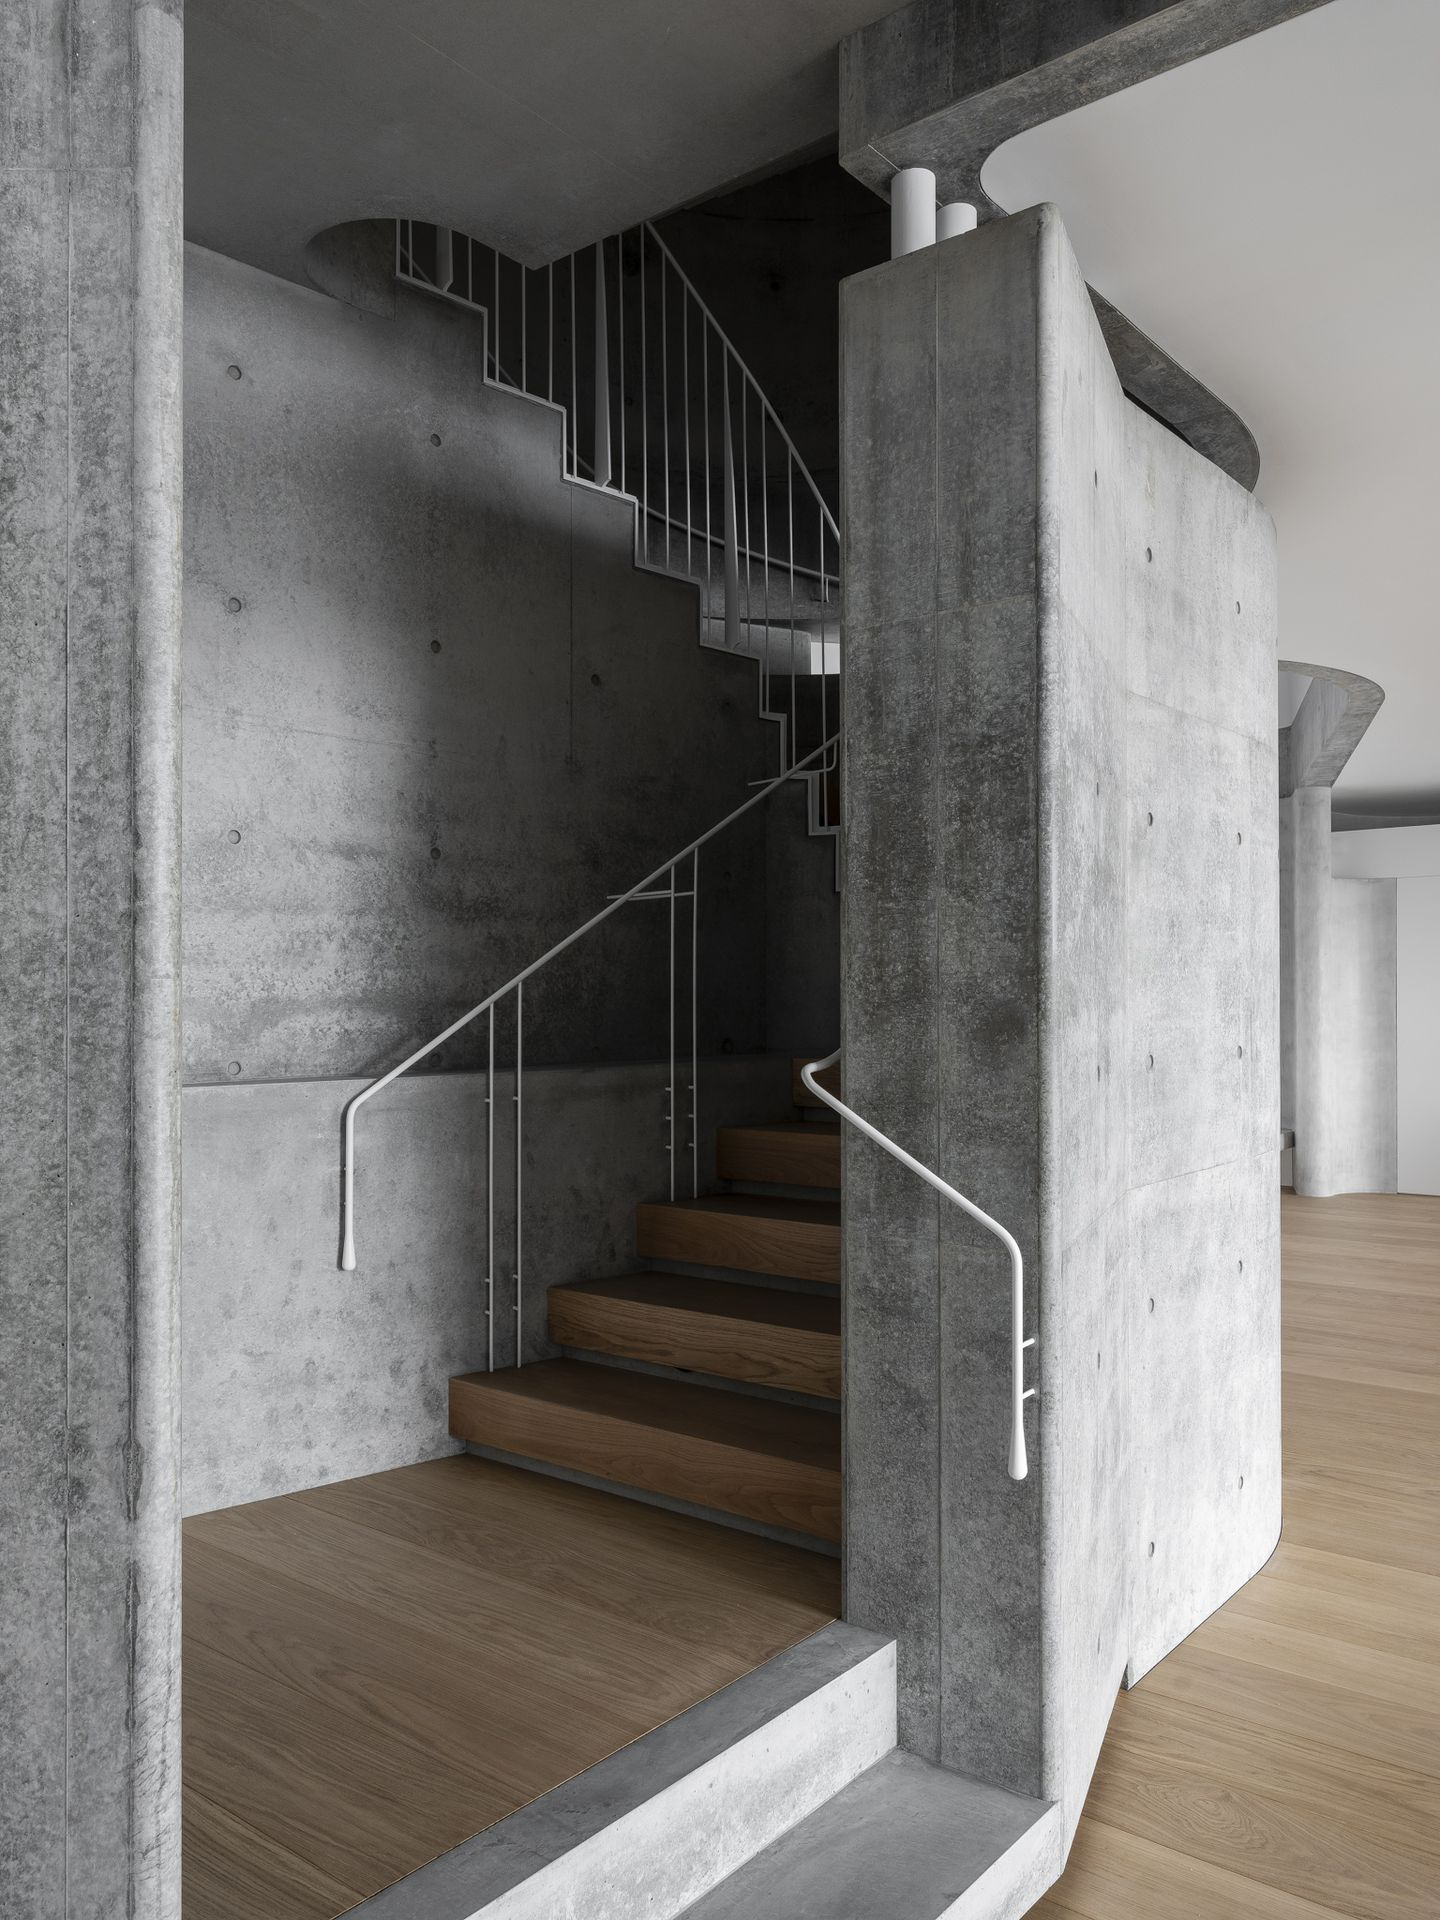 Raw sculptural concrete brutalist building on located on the Sydney harbour front in Point Piper designed by Durbach Block Jaggers Architects.